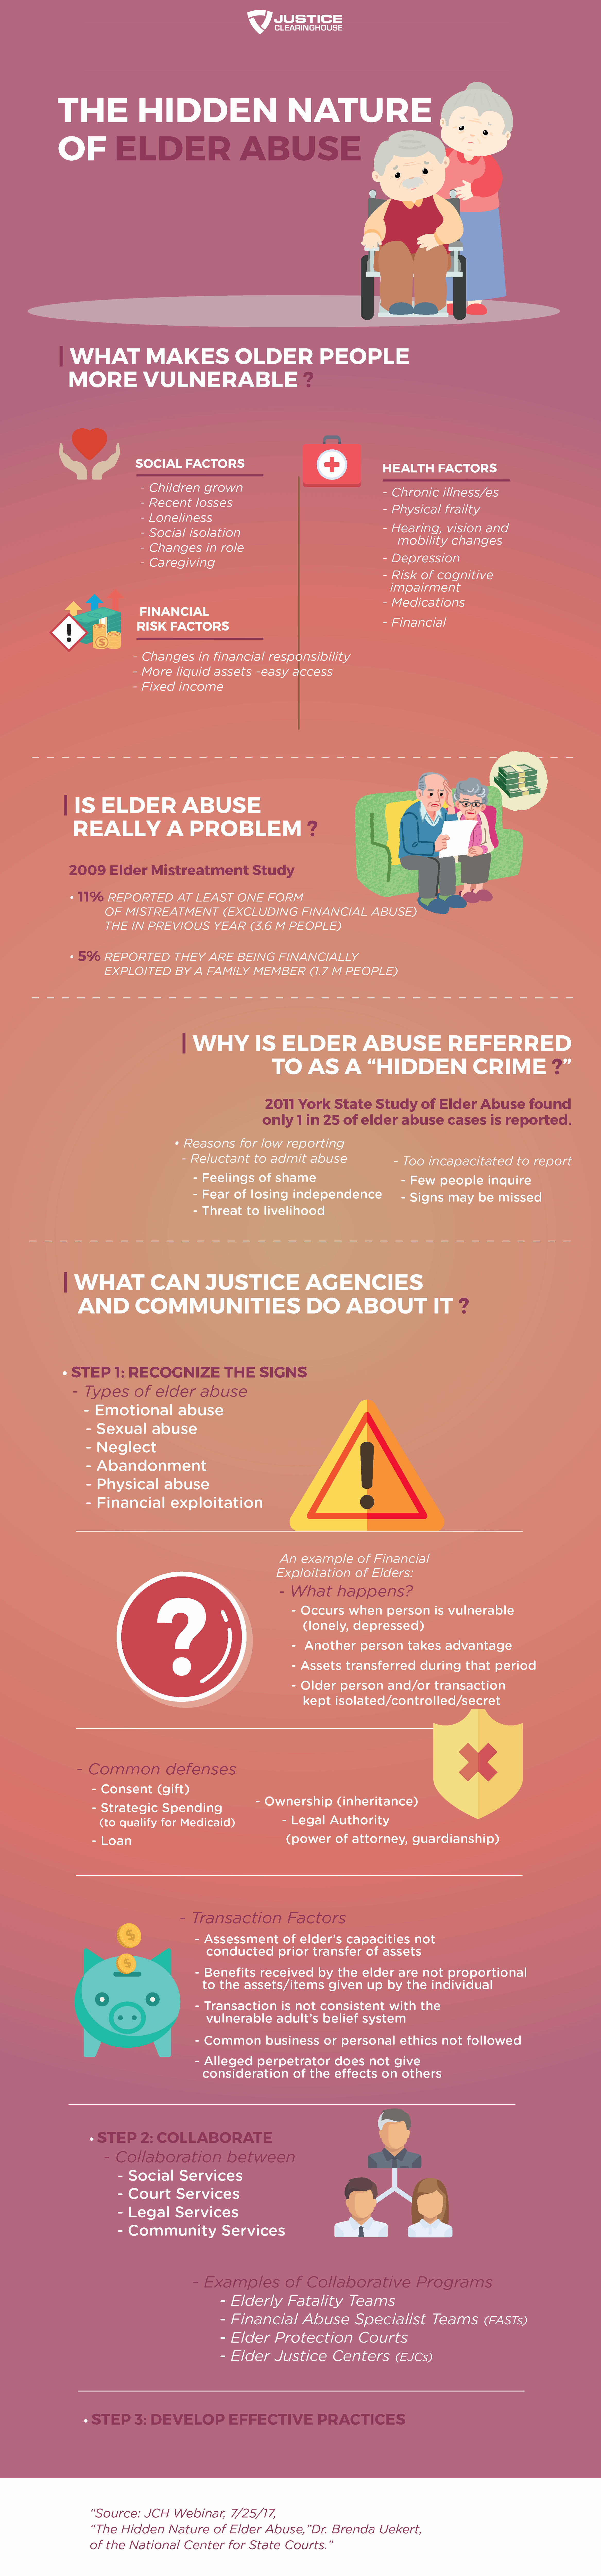 Infographic The_Hidden_Nature_of_Elder_Abuse